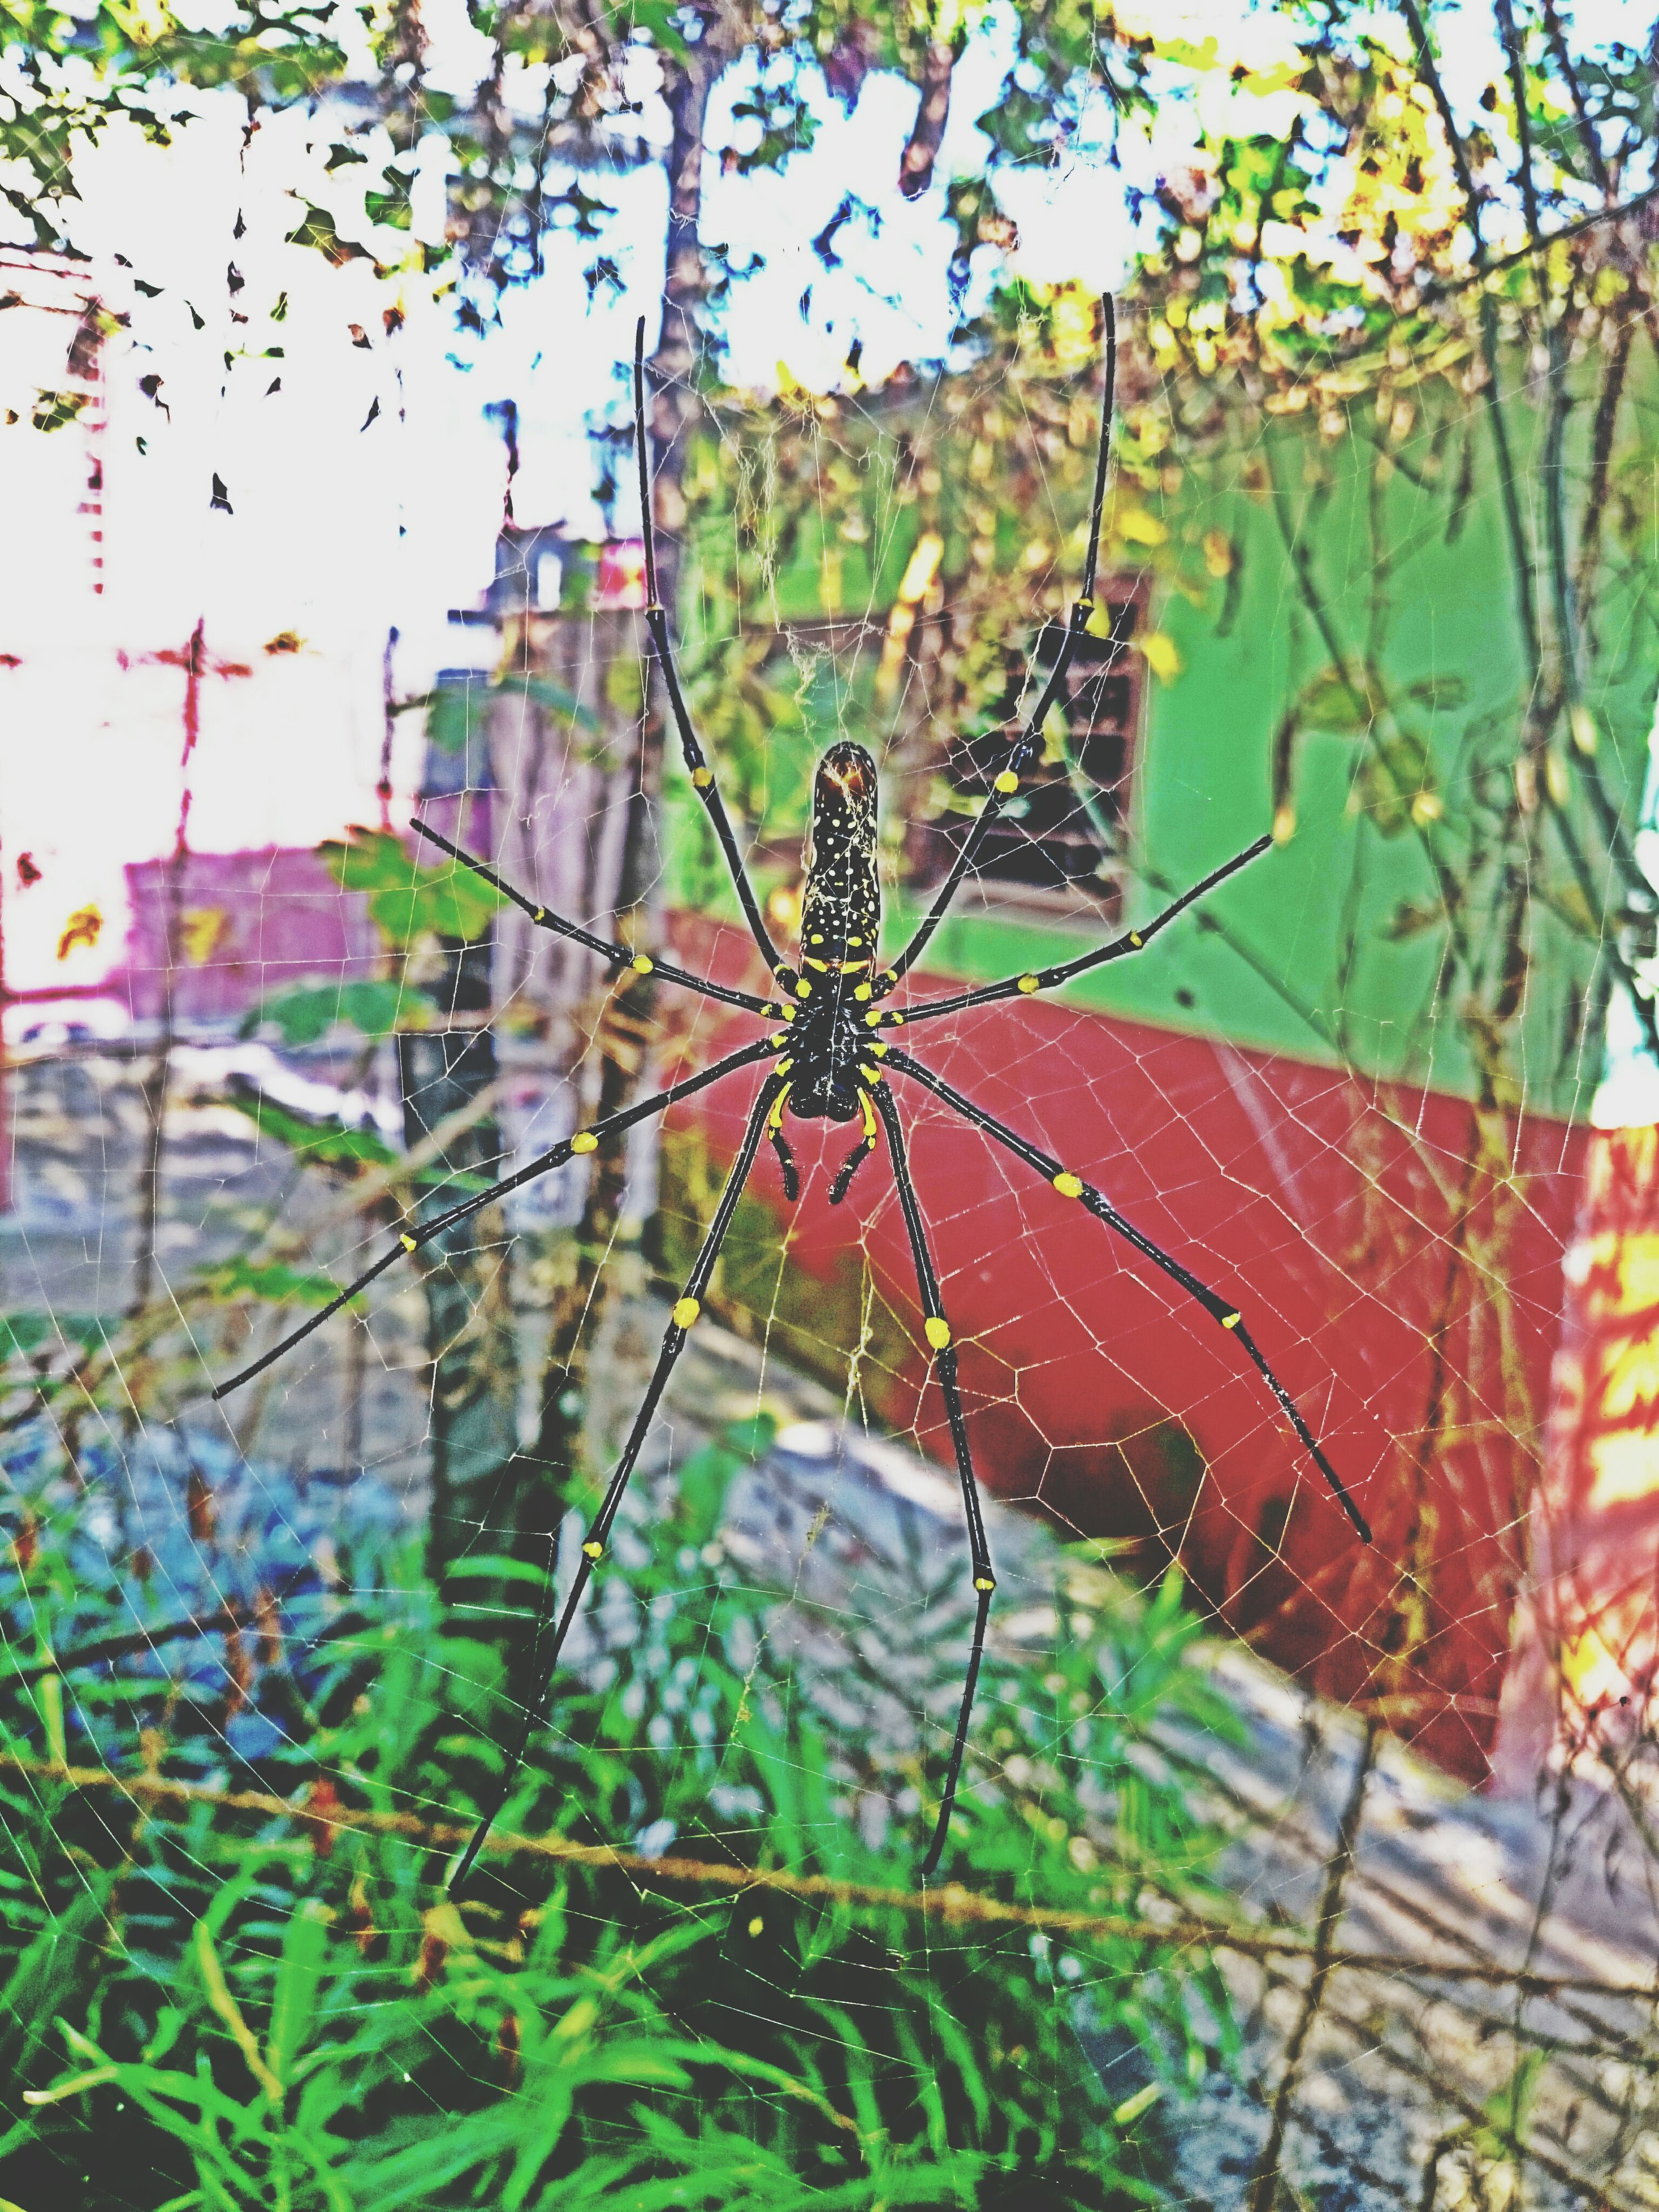 spider web, focus on foreground, close-up, day, nature, leaf, insect, outdoors, plant, no people, red, fragility, water, growth, natural pattern, one animal, beauty in nature, low angle view, wet, sky